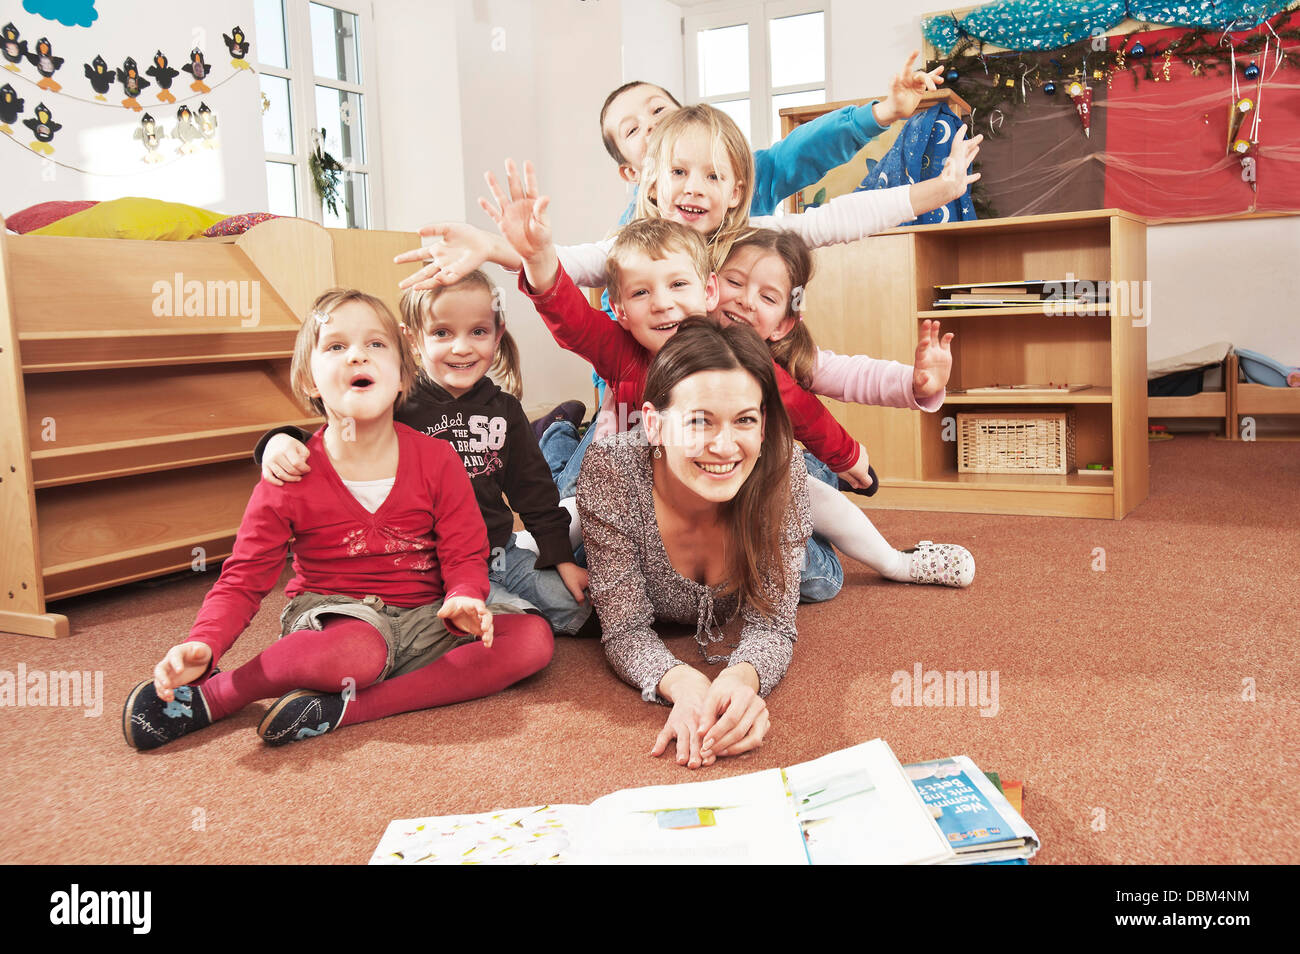 Children In Nursery School, Kottgeisering, Bavaria, Germany, Europe - Stock Image